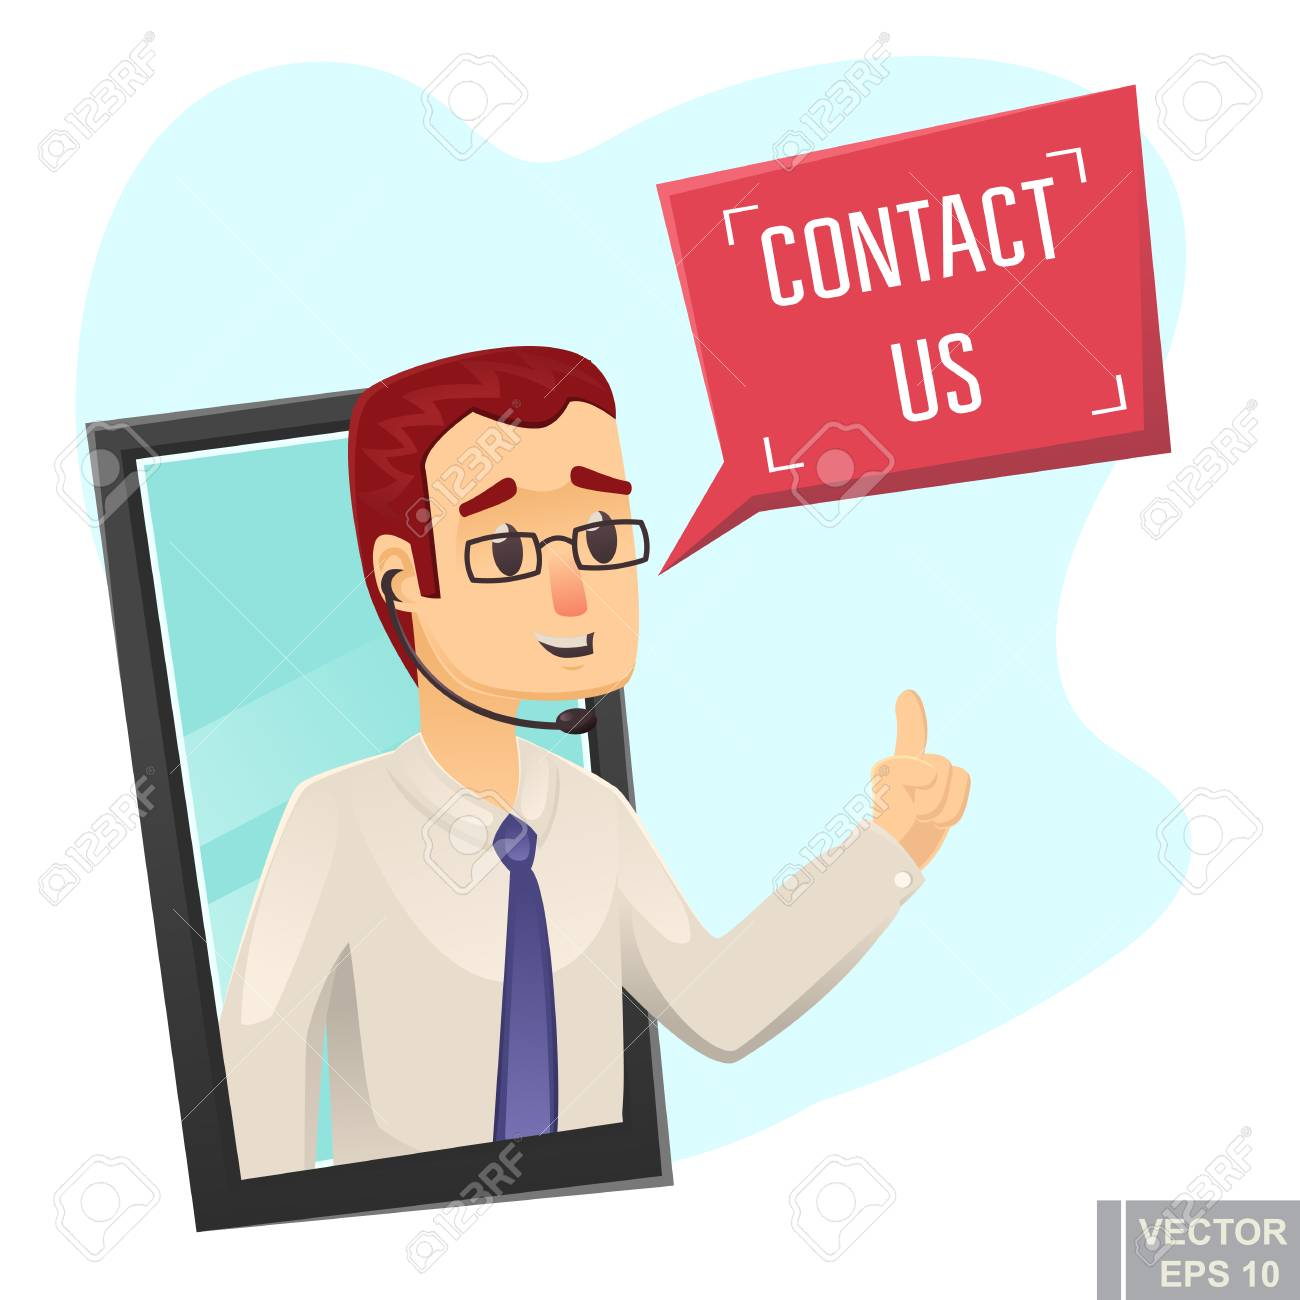 Contact Us Funny >> Call Center Help Design Young Funny Man Asking To Contact Us